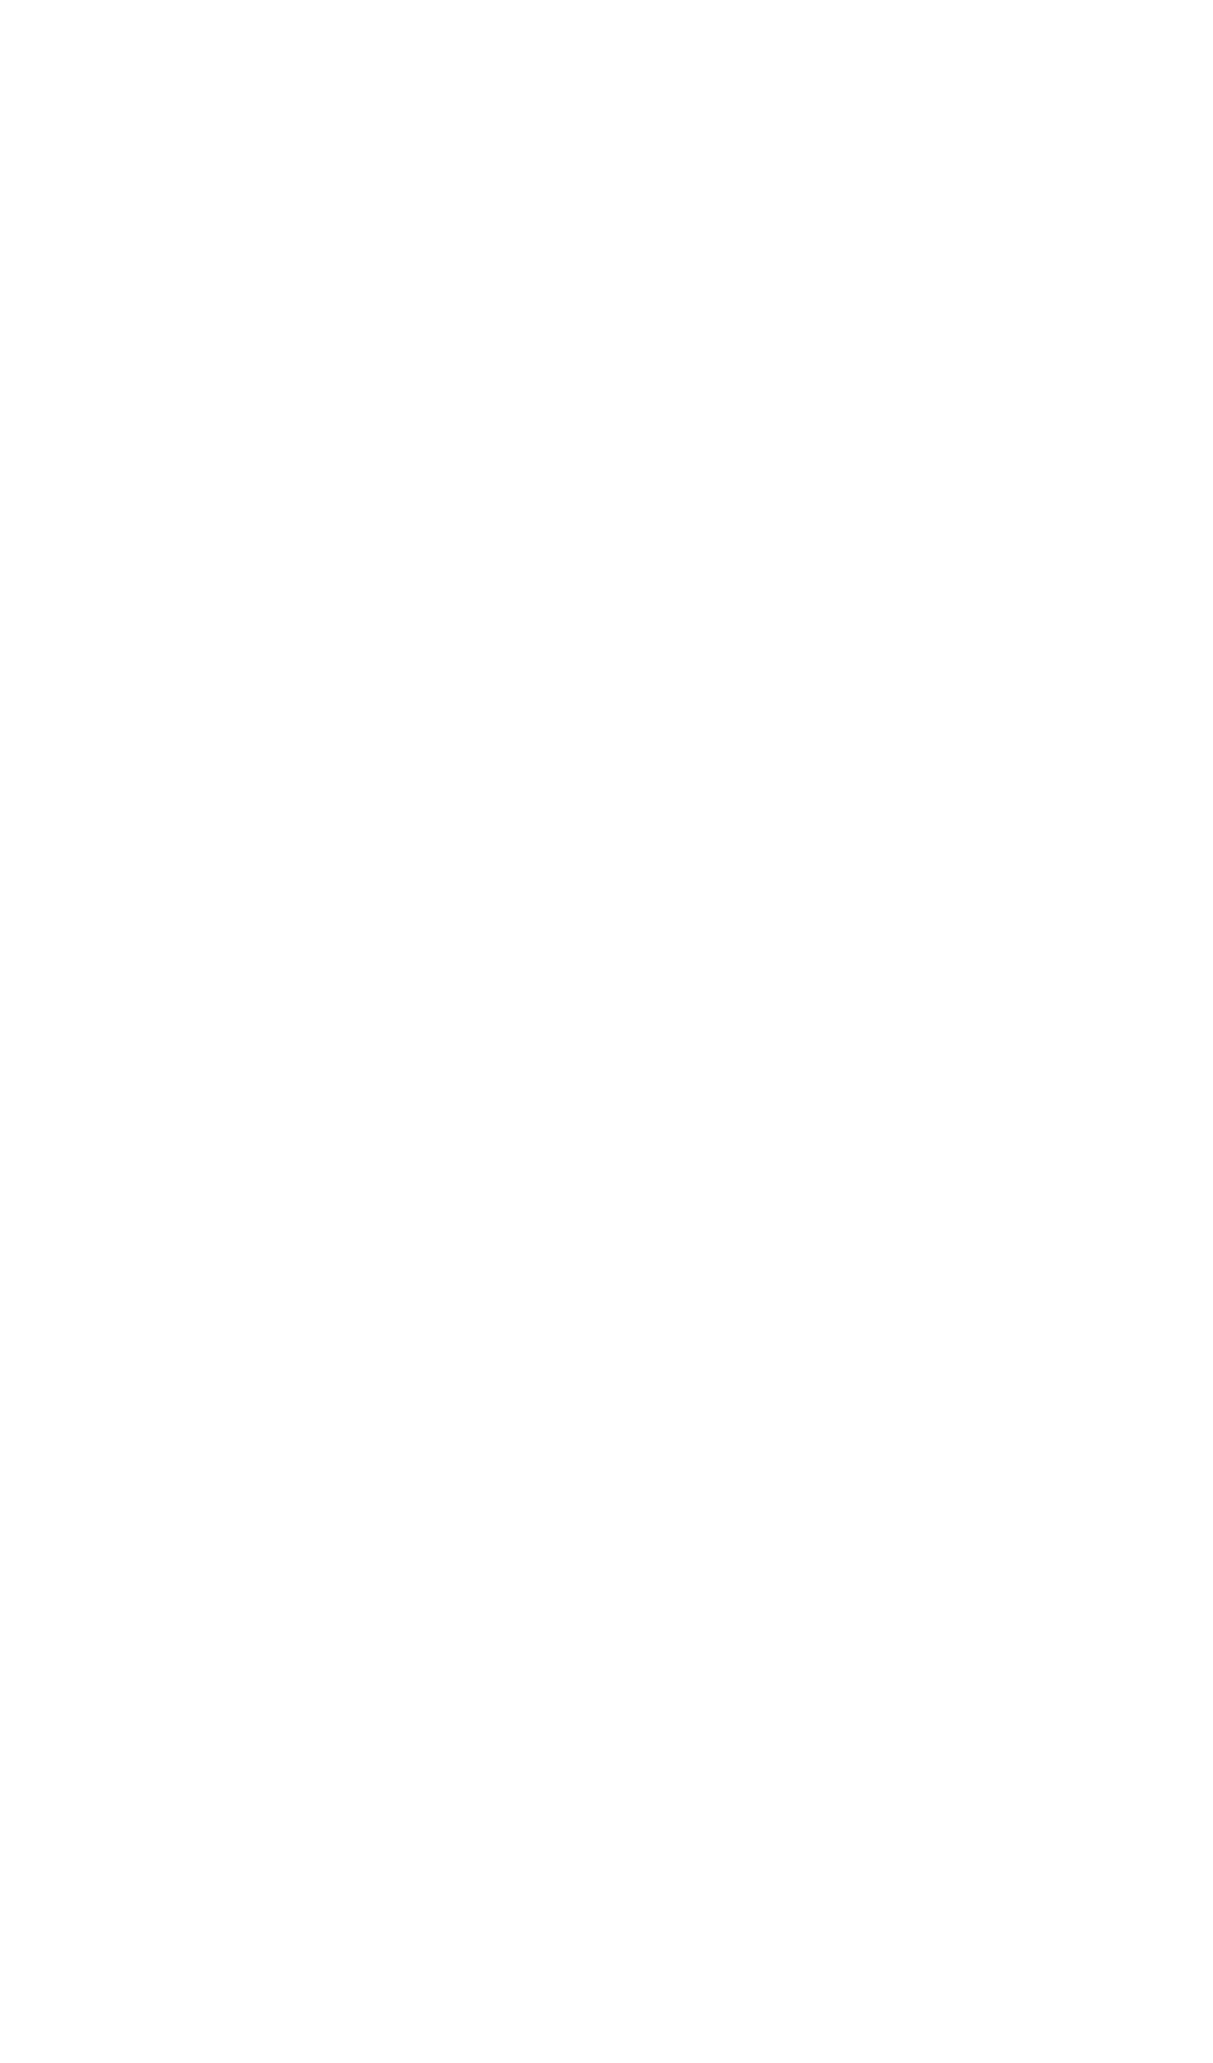 New T-Shirt Design for 2018